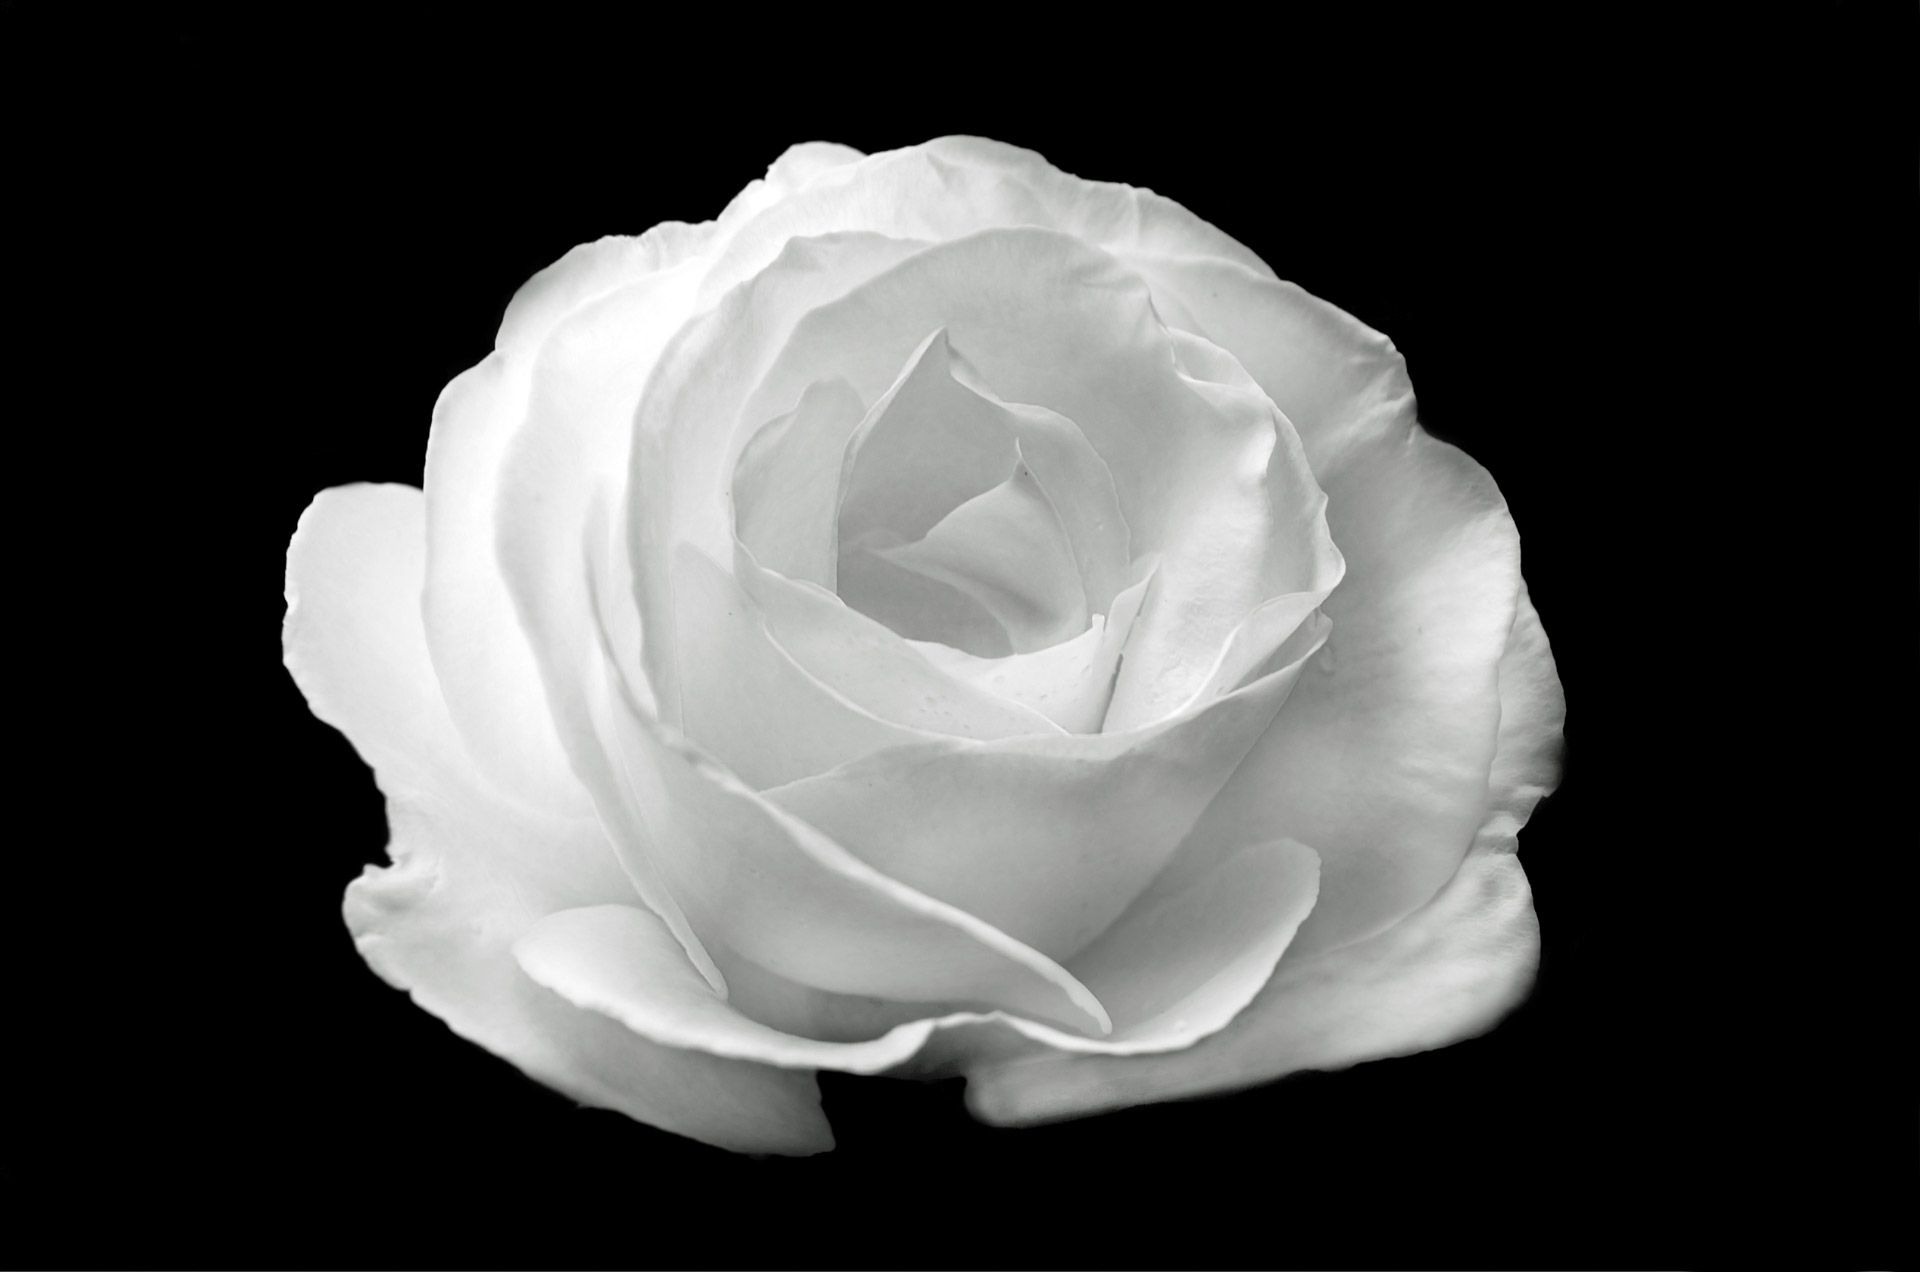 White Rose On The Black Background 1920 X 1272 Size Available For Free Download Higher Res For Sale 1 Enla White Roses Black And White Black Backgrounds